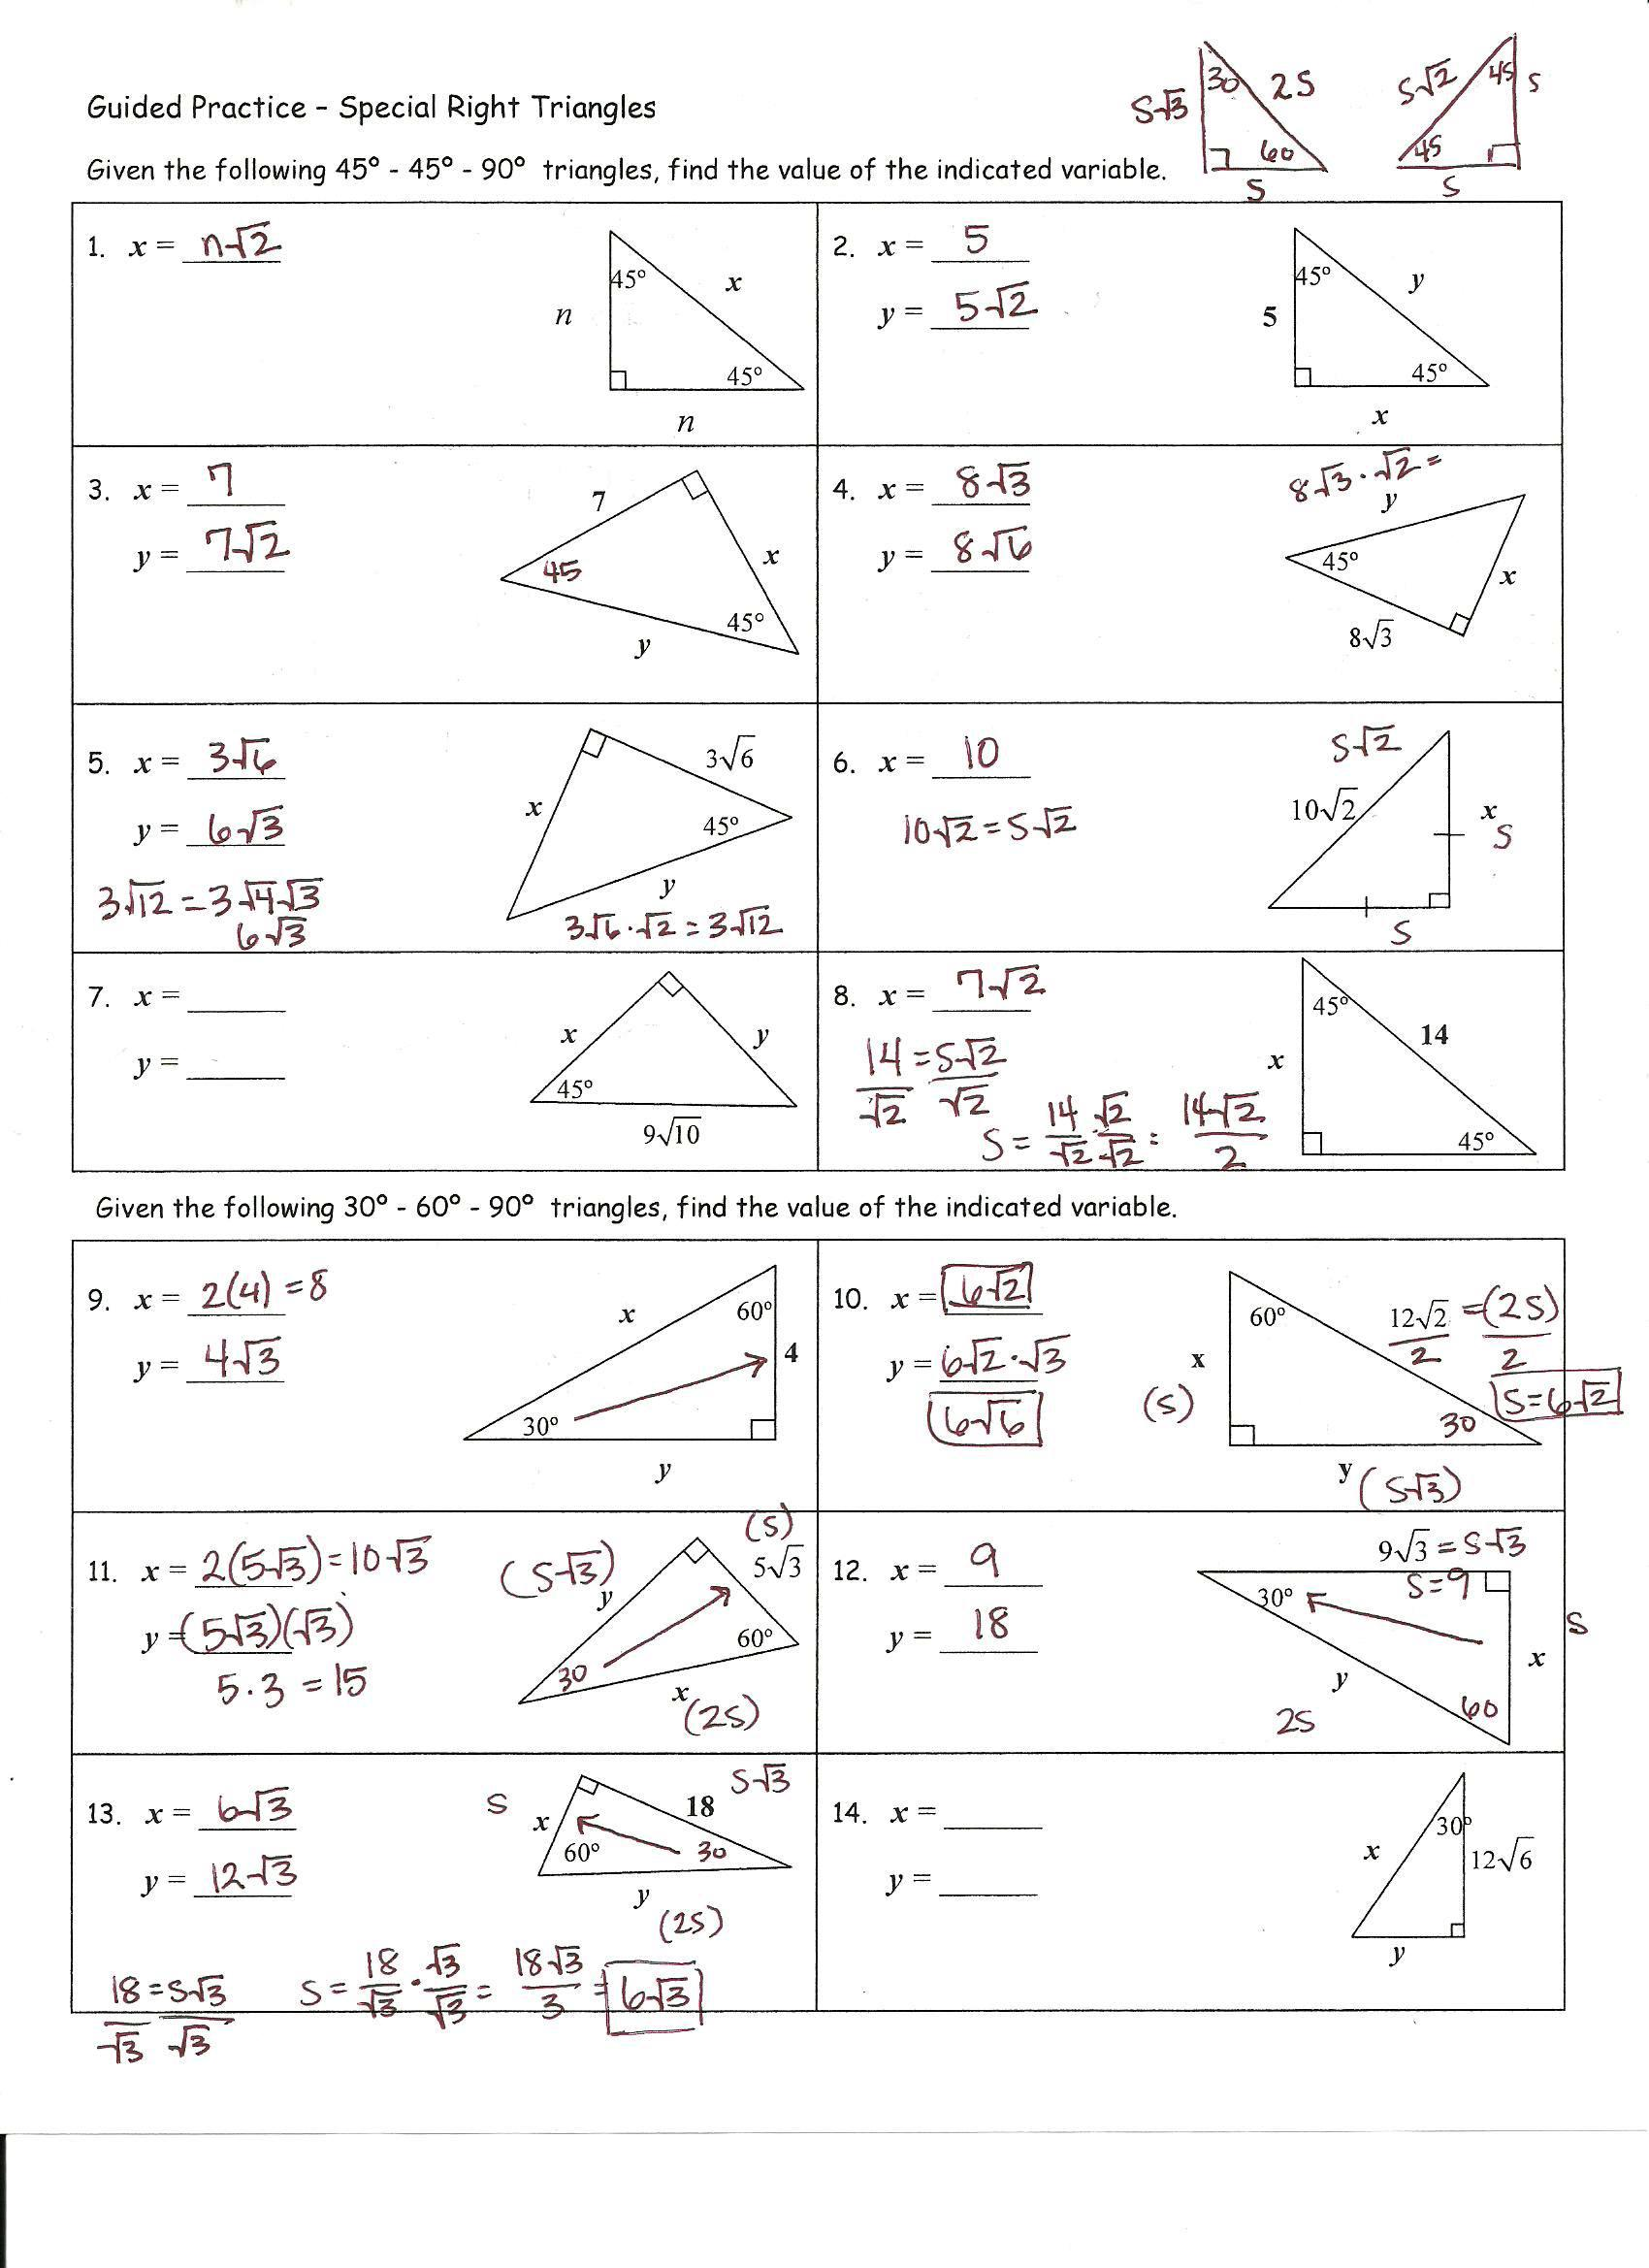 Worksheets 30-60-90 Triangle Worksheet worksheets special right triangles 30 60 90 worksheet answers and trigonometry free worksheets